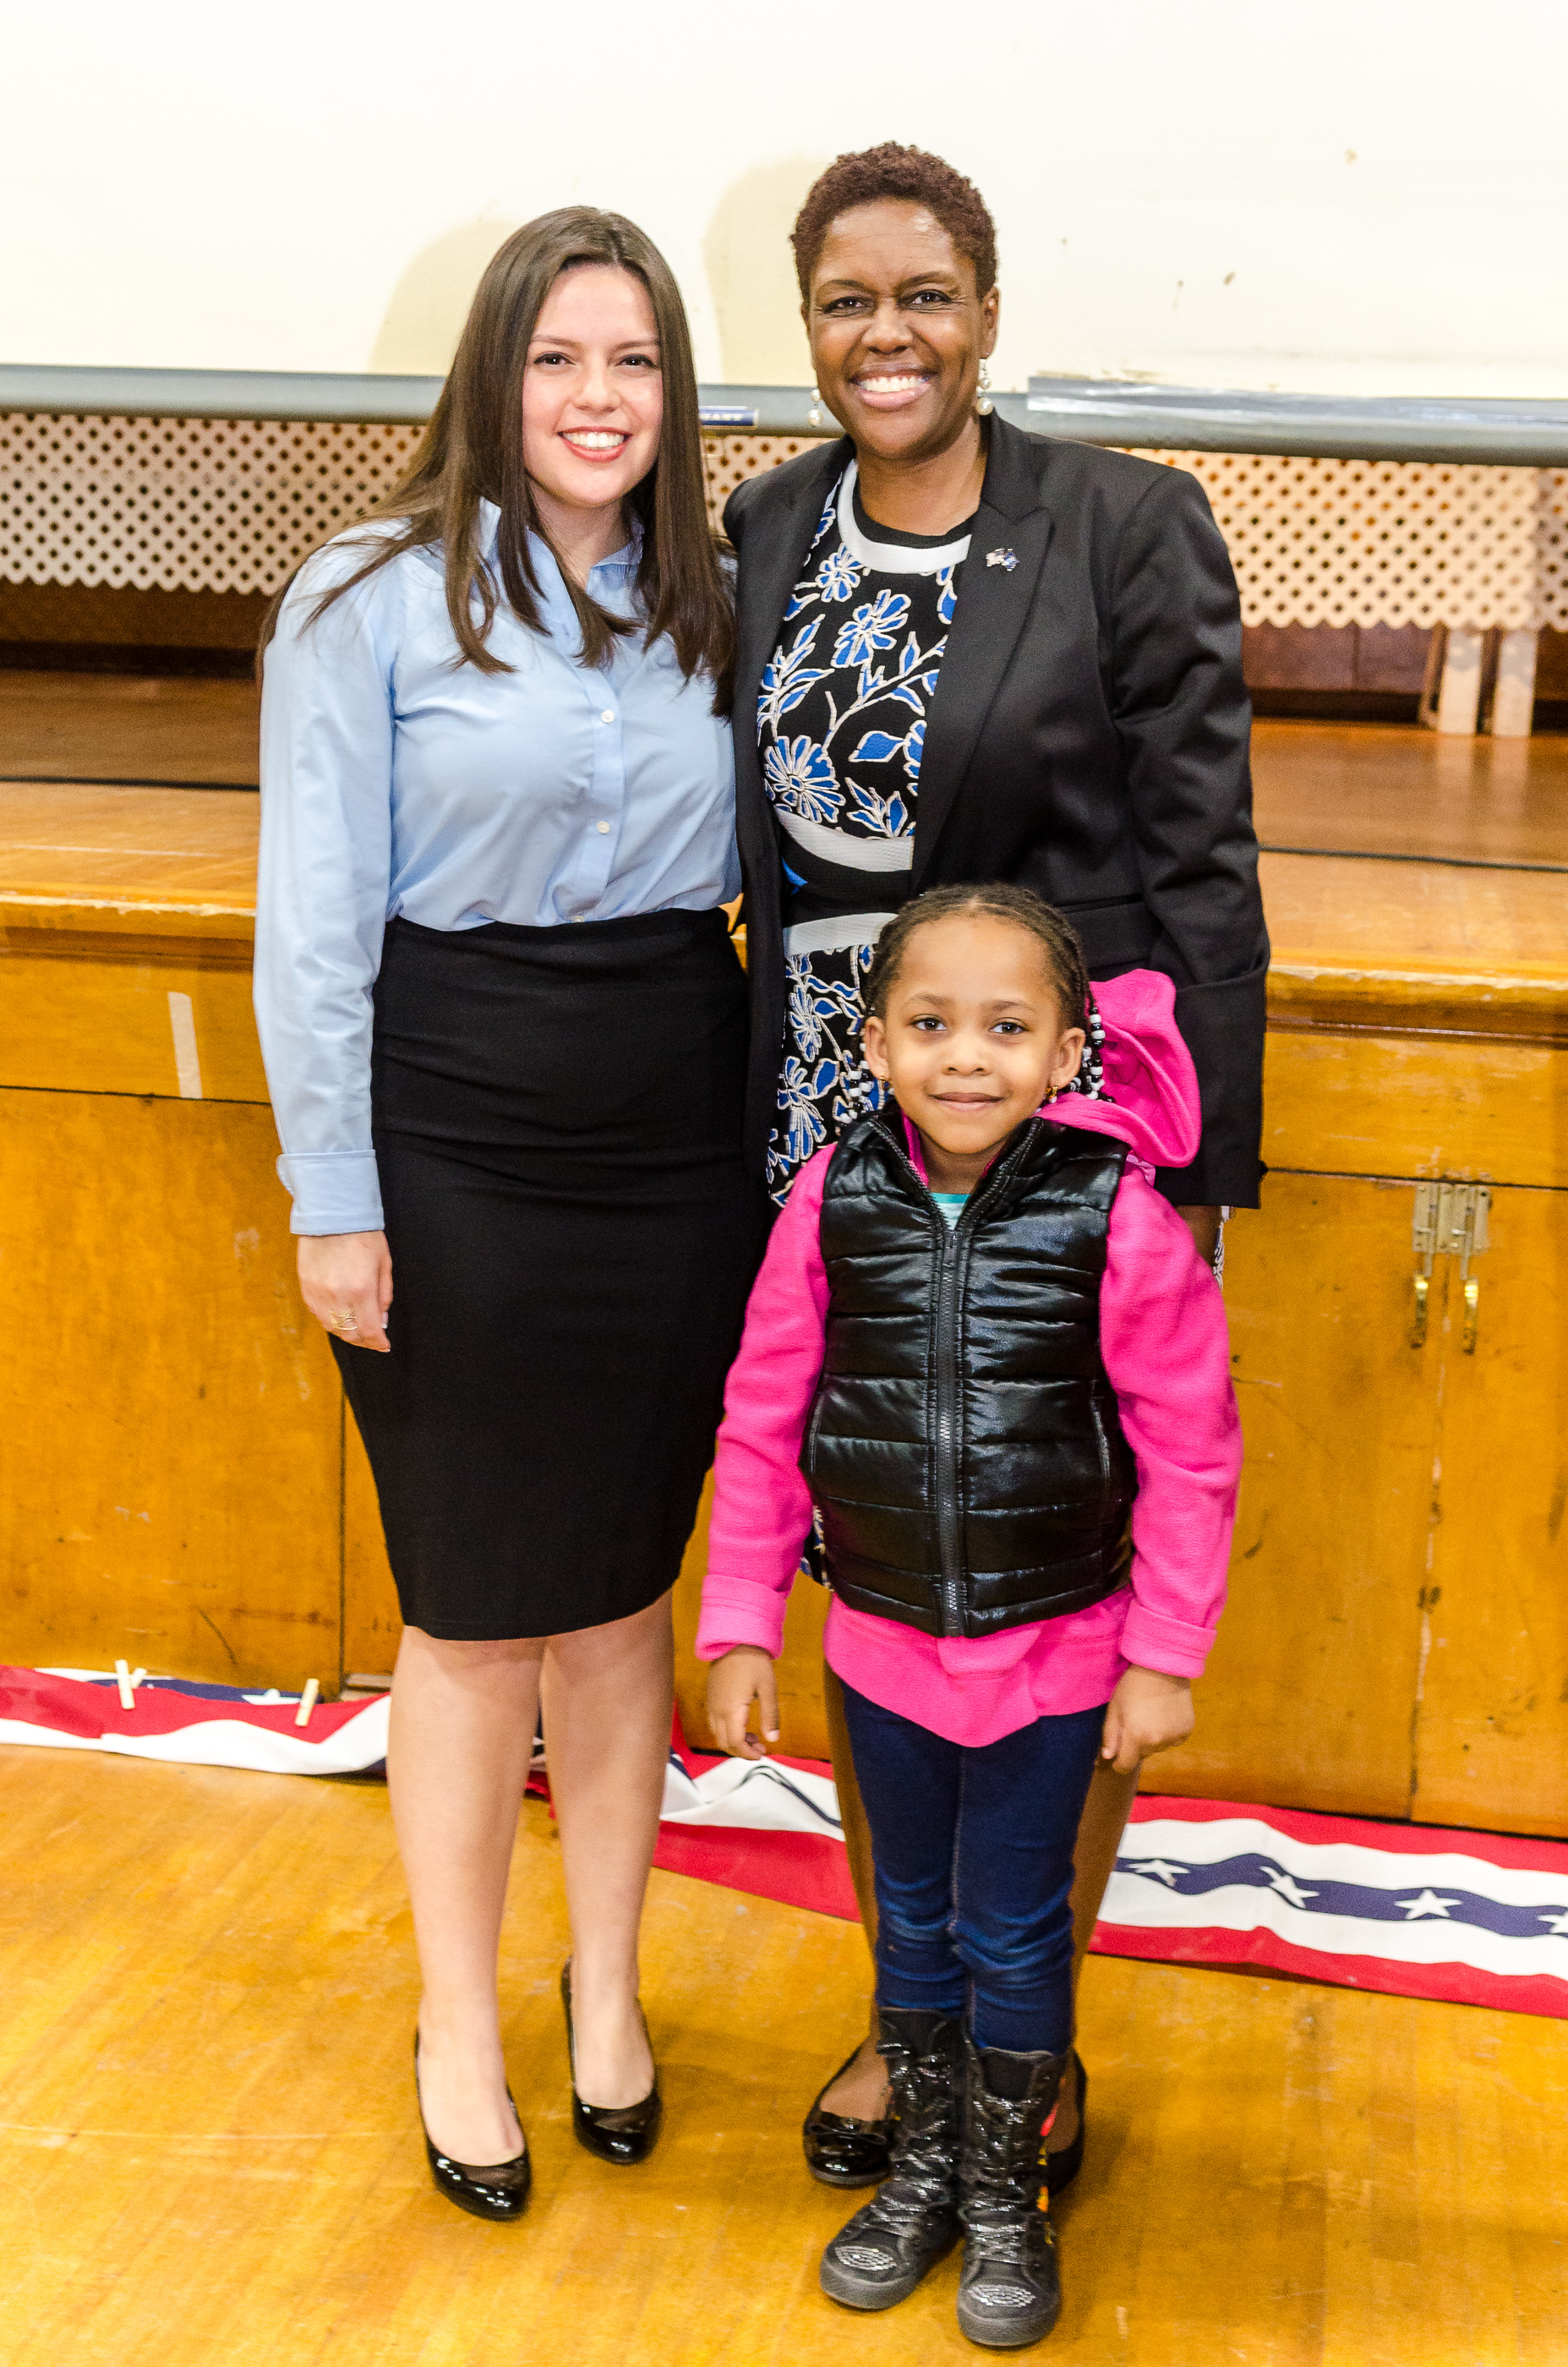 Sara Sooy and Shanel Robinson, Democrats for Somerset County Freeholder